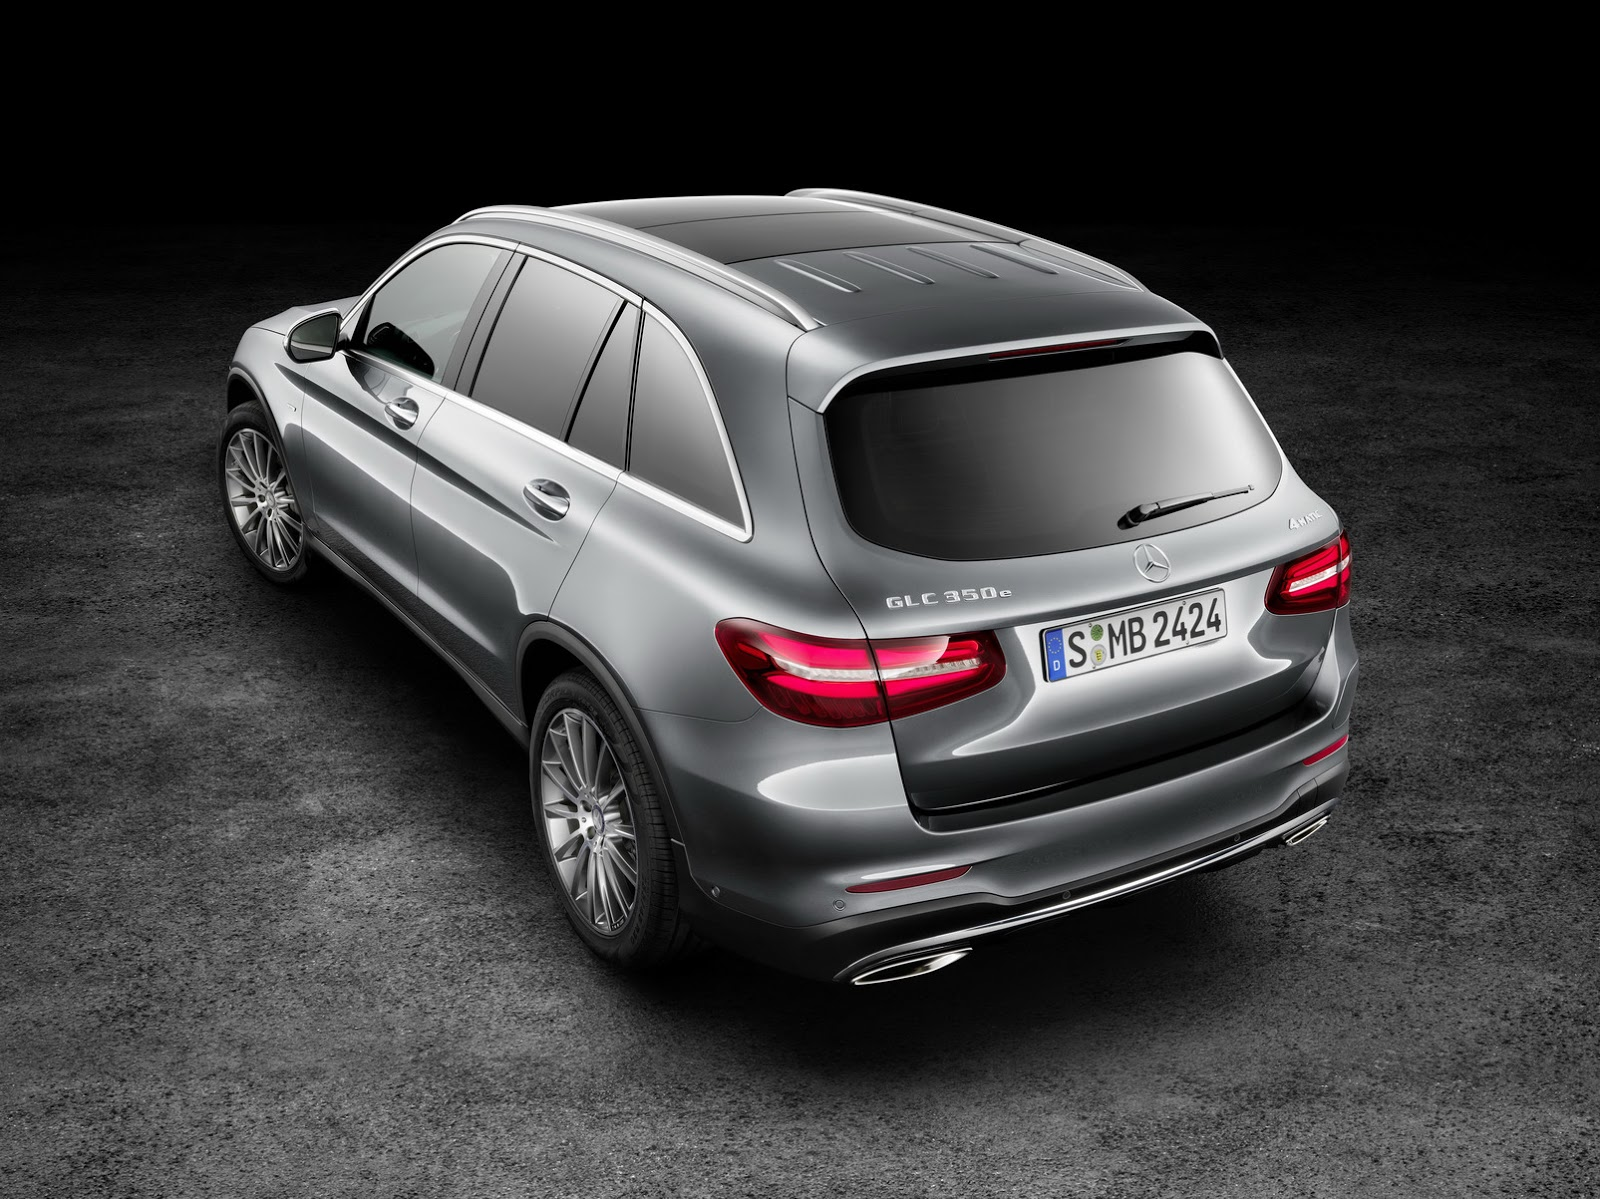 Mercedes usa prices new glc gle c450 amg and gle coupe for New mercedes benz price